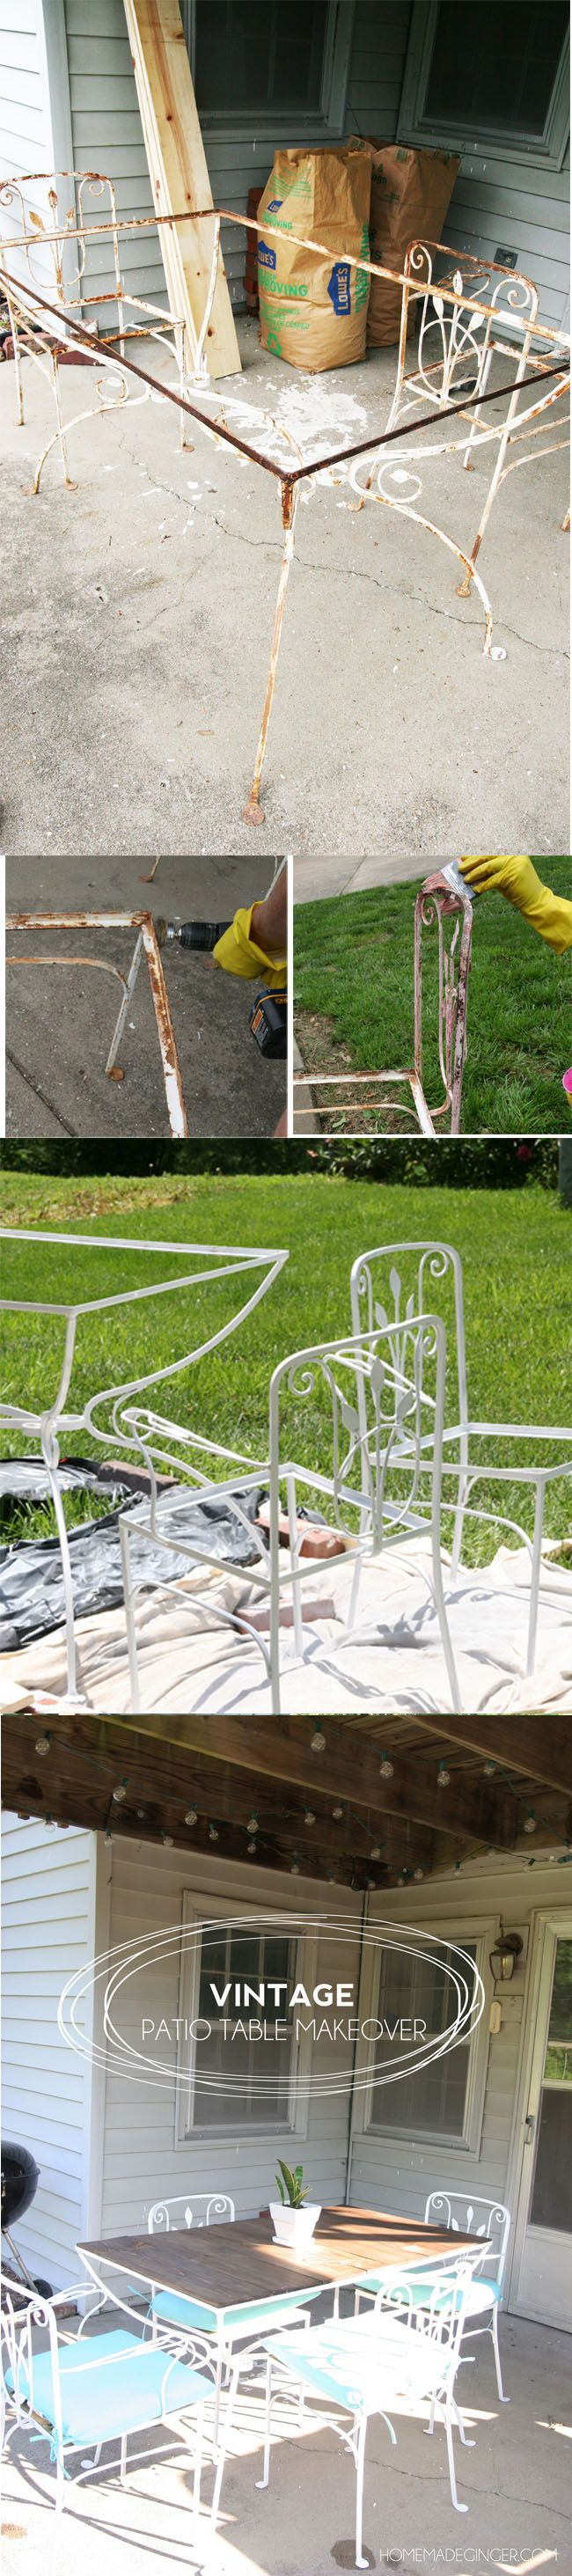 Learn how to spruce up an old rusted patio set by making a planked wood top!